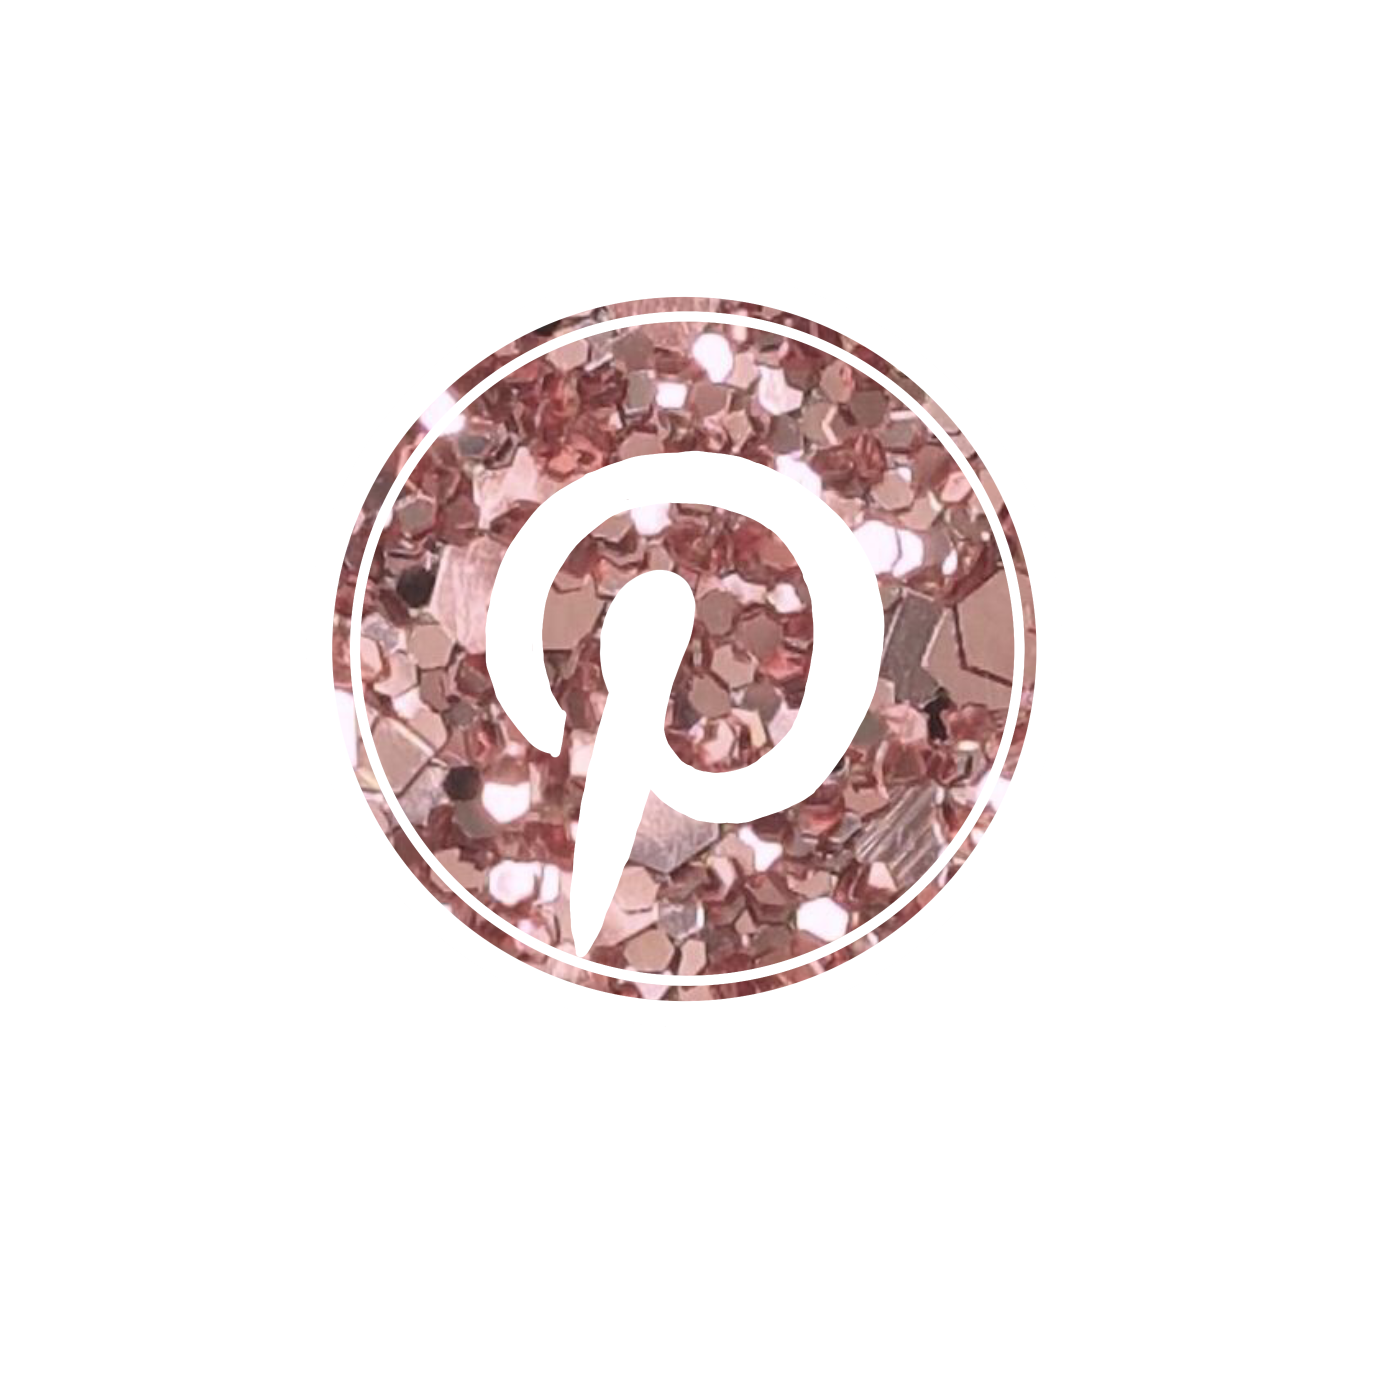 Shortcuts, icon, Pinterest, aesthetic, pink, cute in 2020